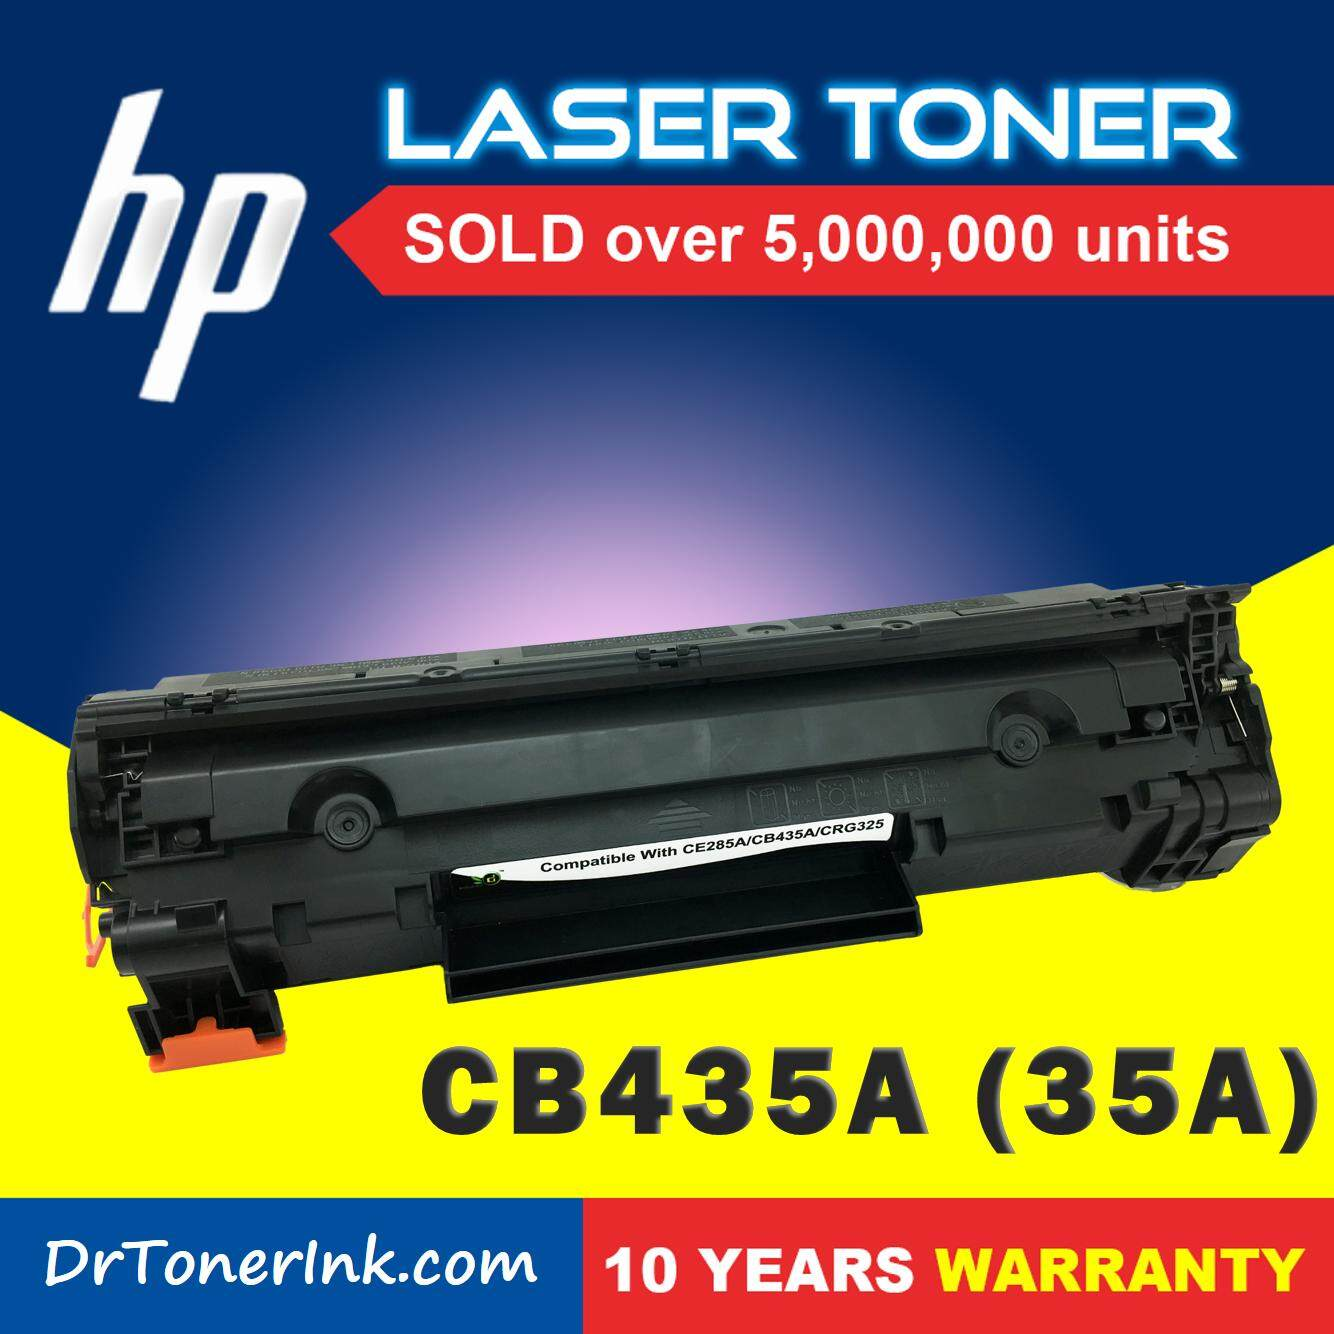 Hp Computers Laptops For The Best Price In Malaysia Notebook 15 Ba004ax Compatible Drtoner Cb435a 435 35a Mono Black Laserjet